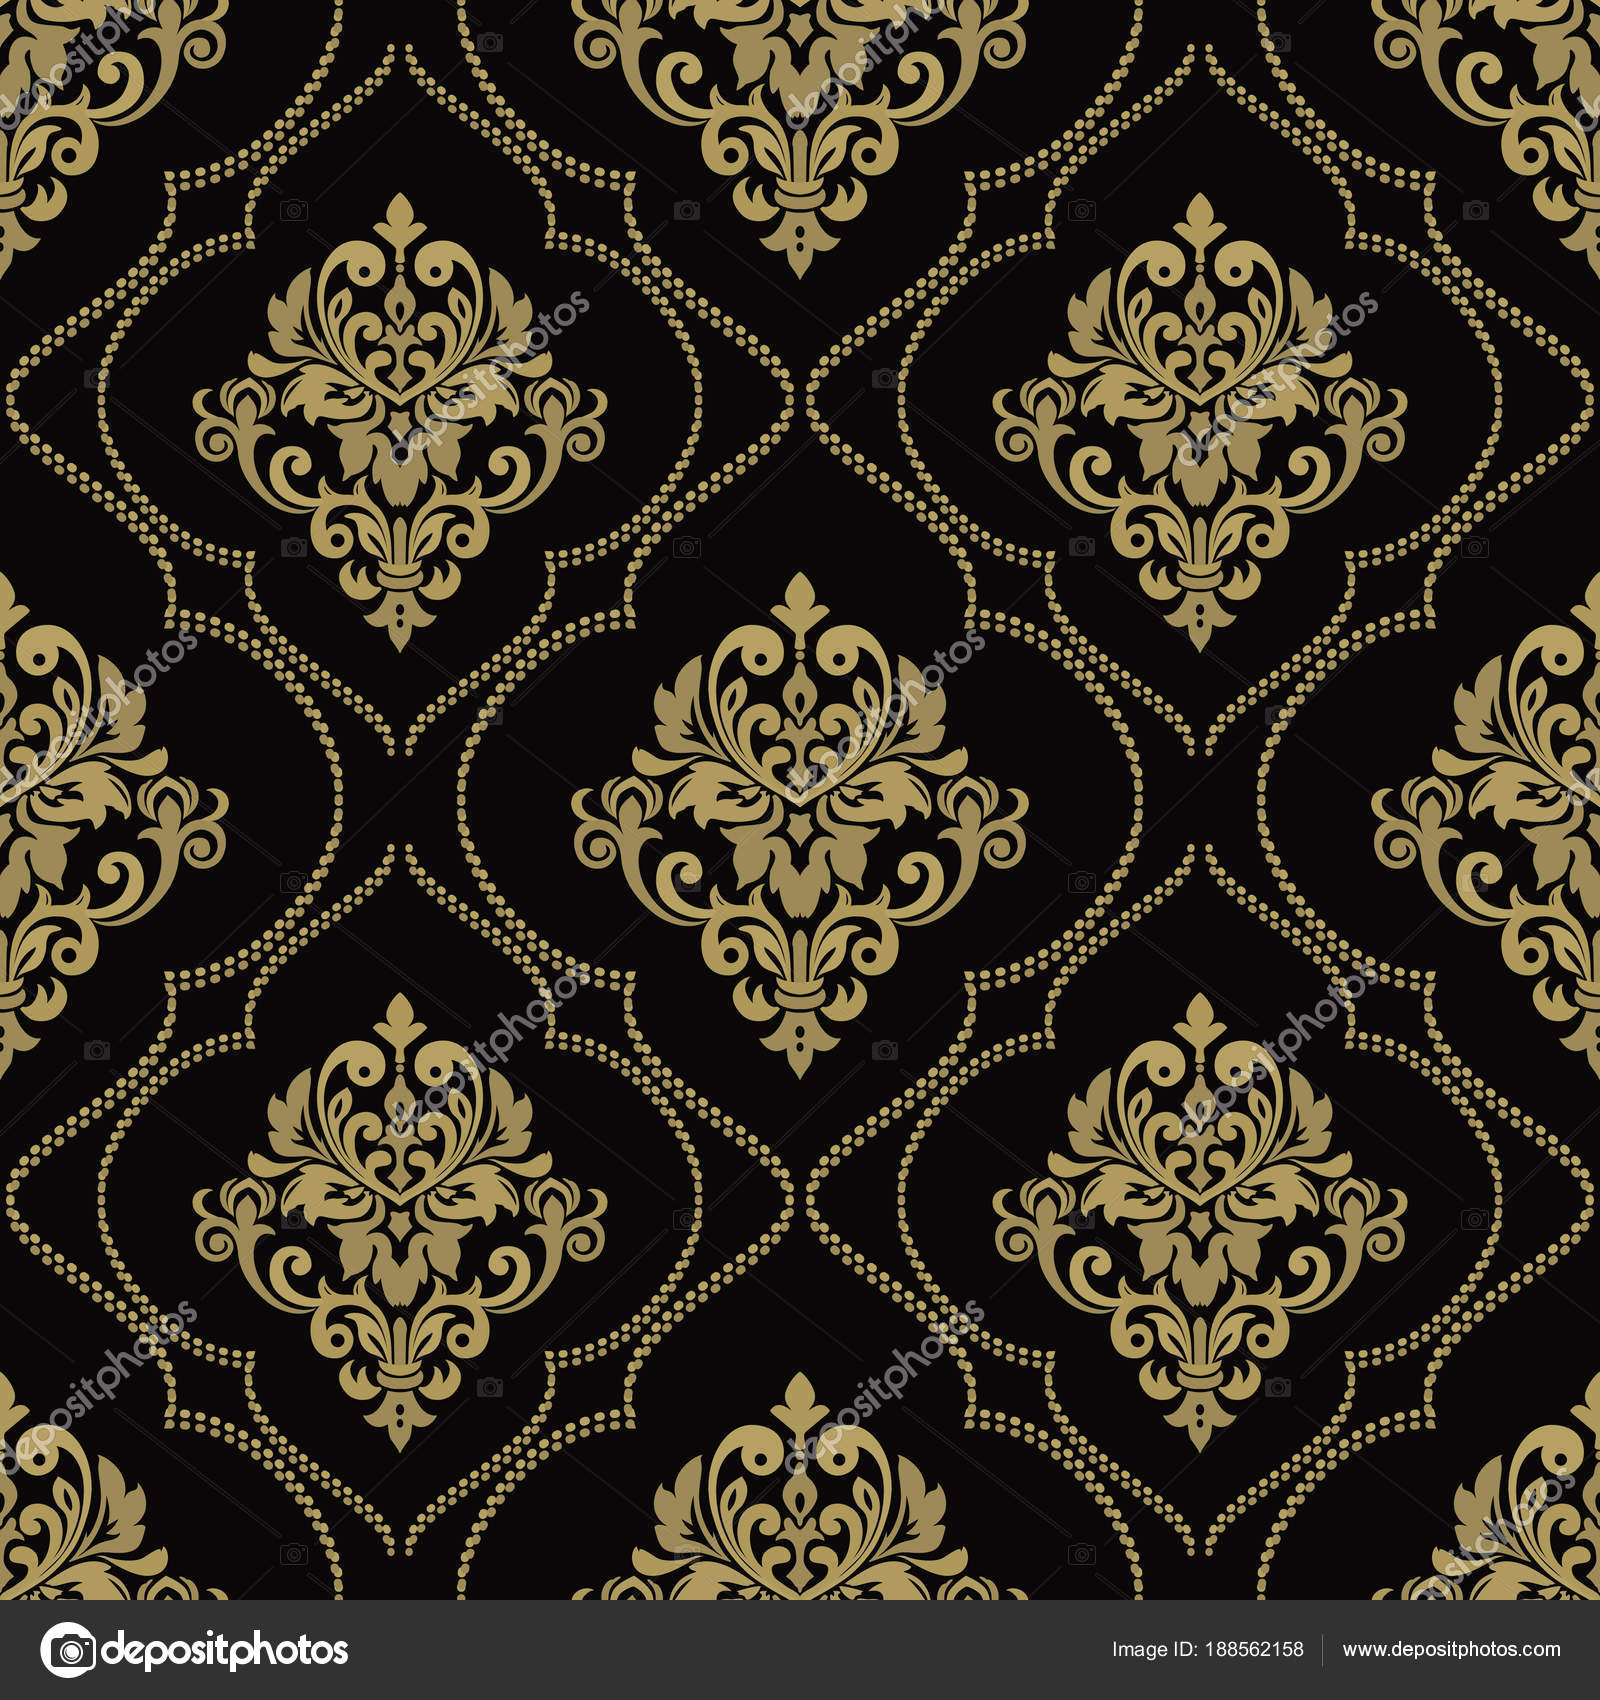 Vector Vintage Floral Seamless Pattern Element Damask Wallpaper